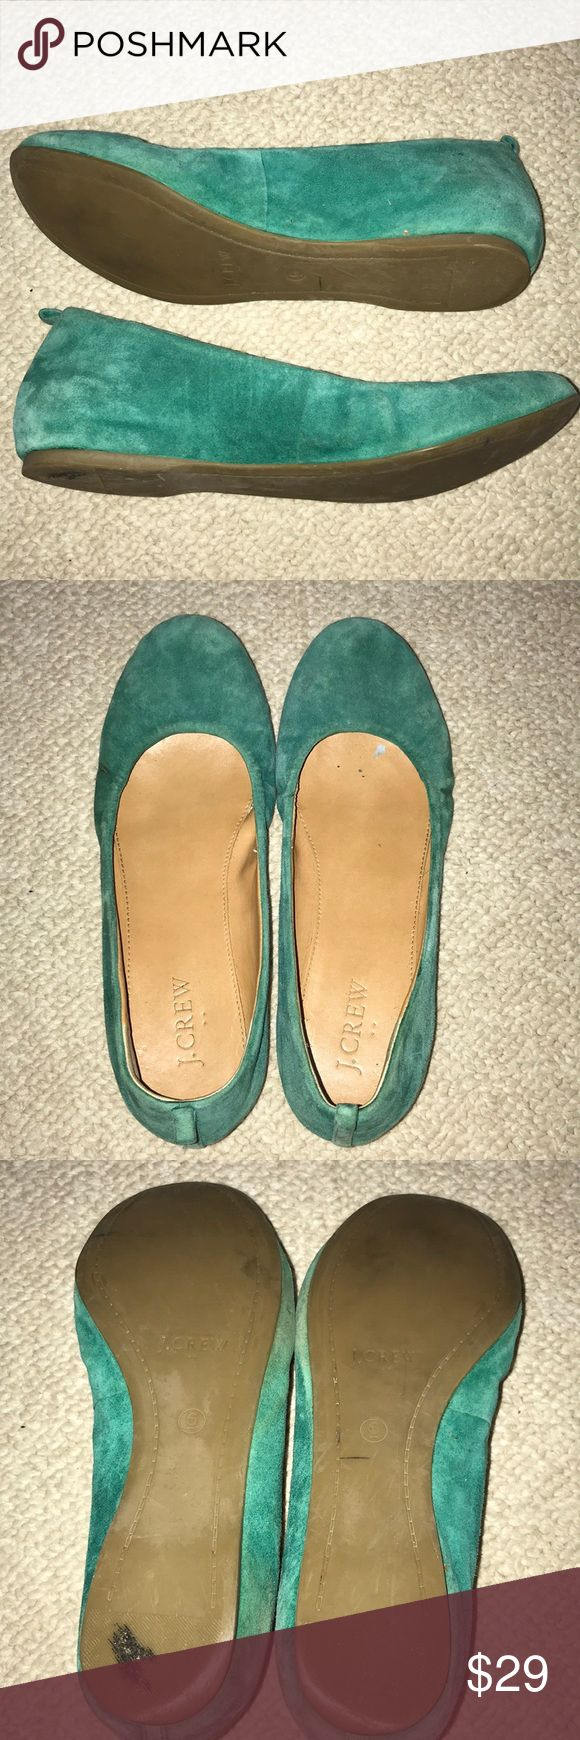 J Crew flats Turquoise/Green color Suede material  Purchased from J Crew outlet Size 6 No box J. Crew Shoes Flats & Loafers